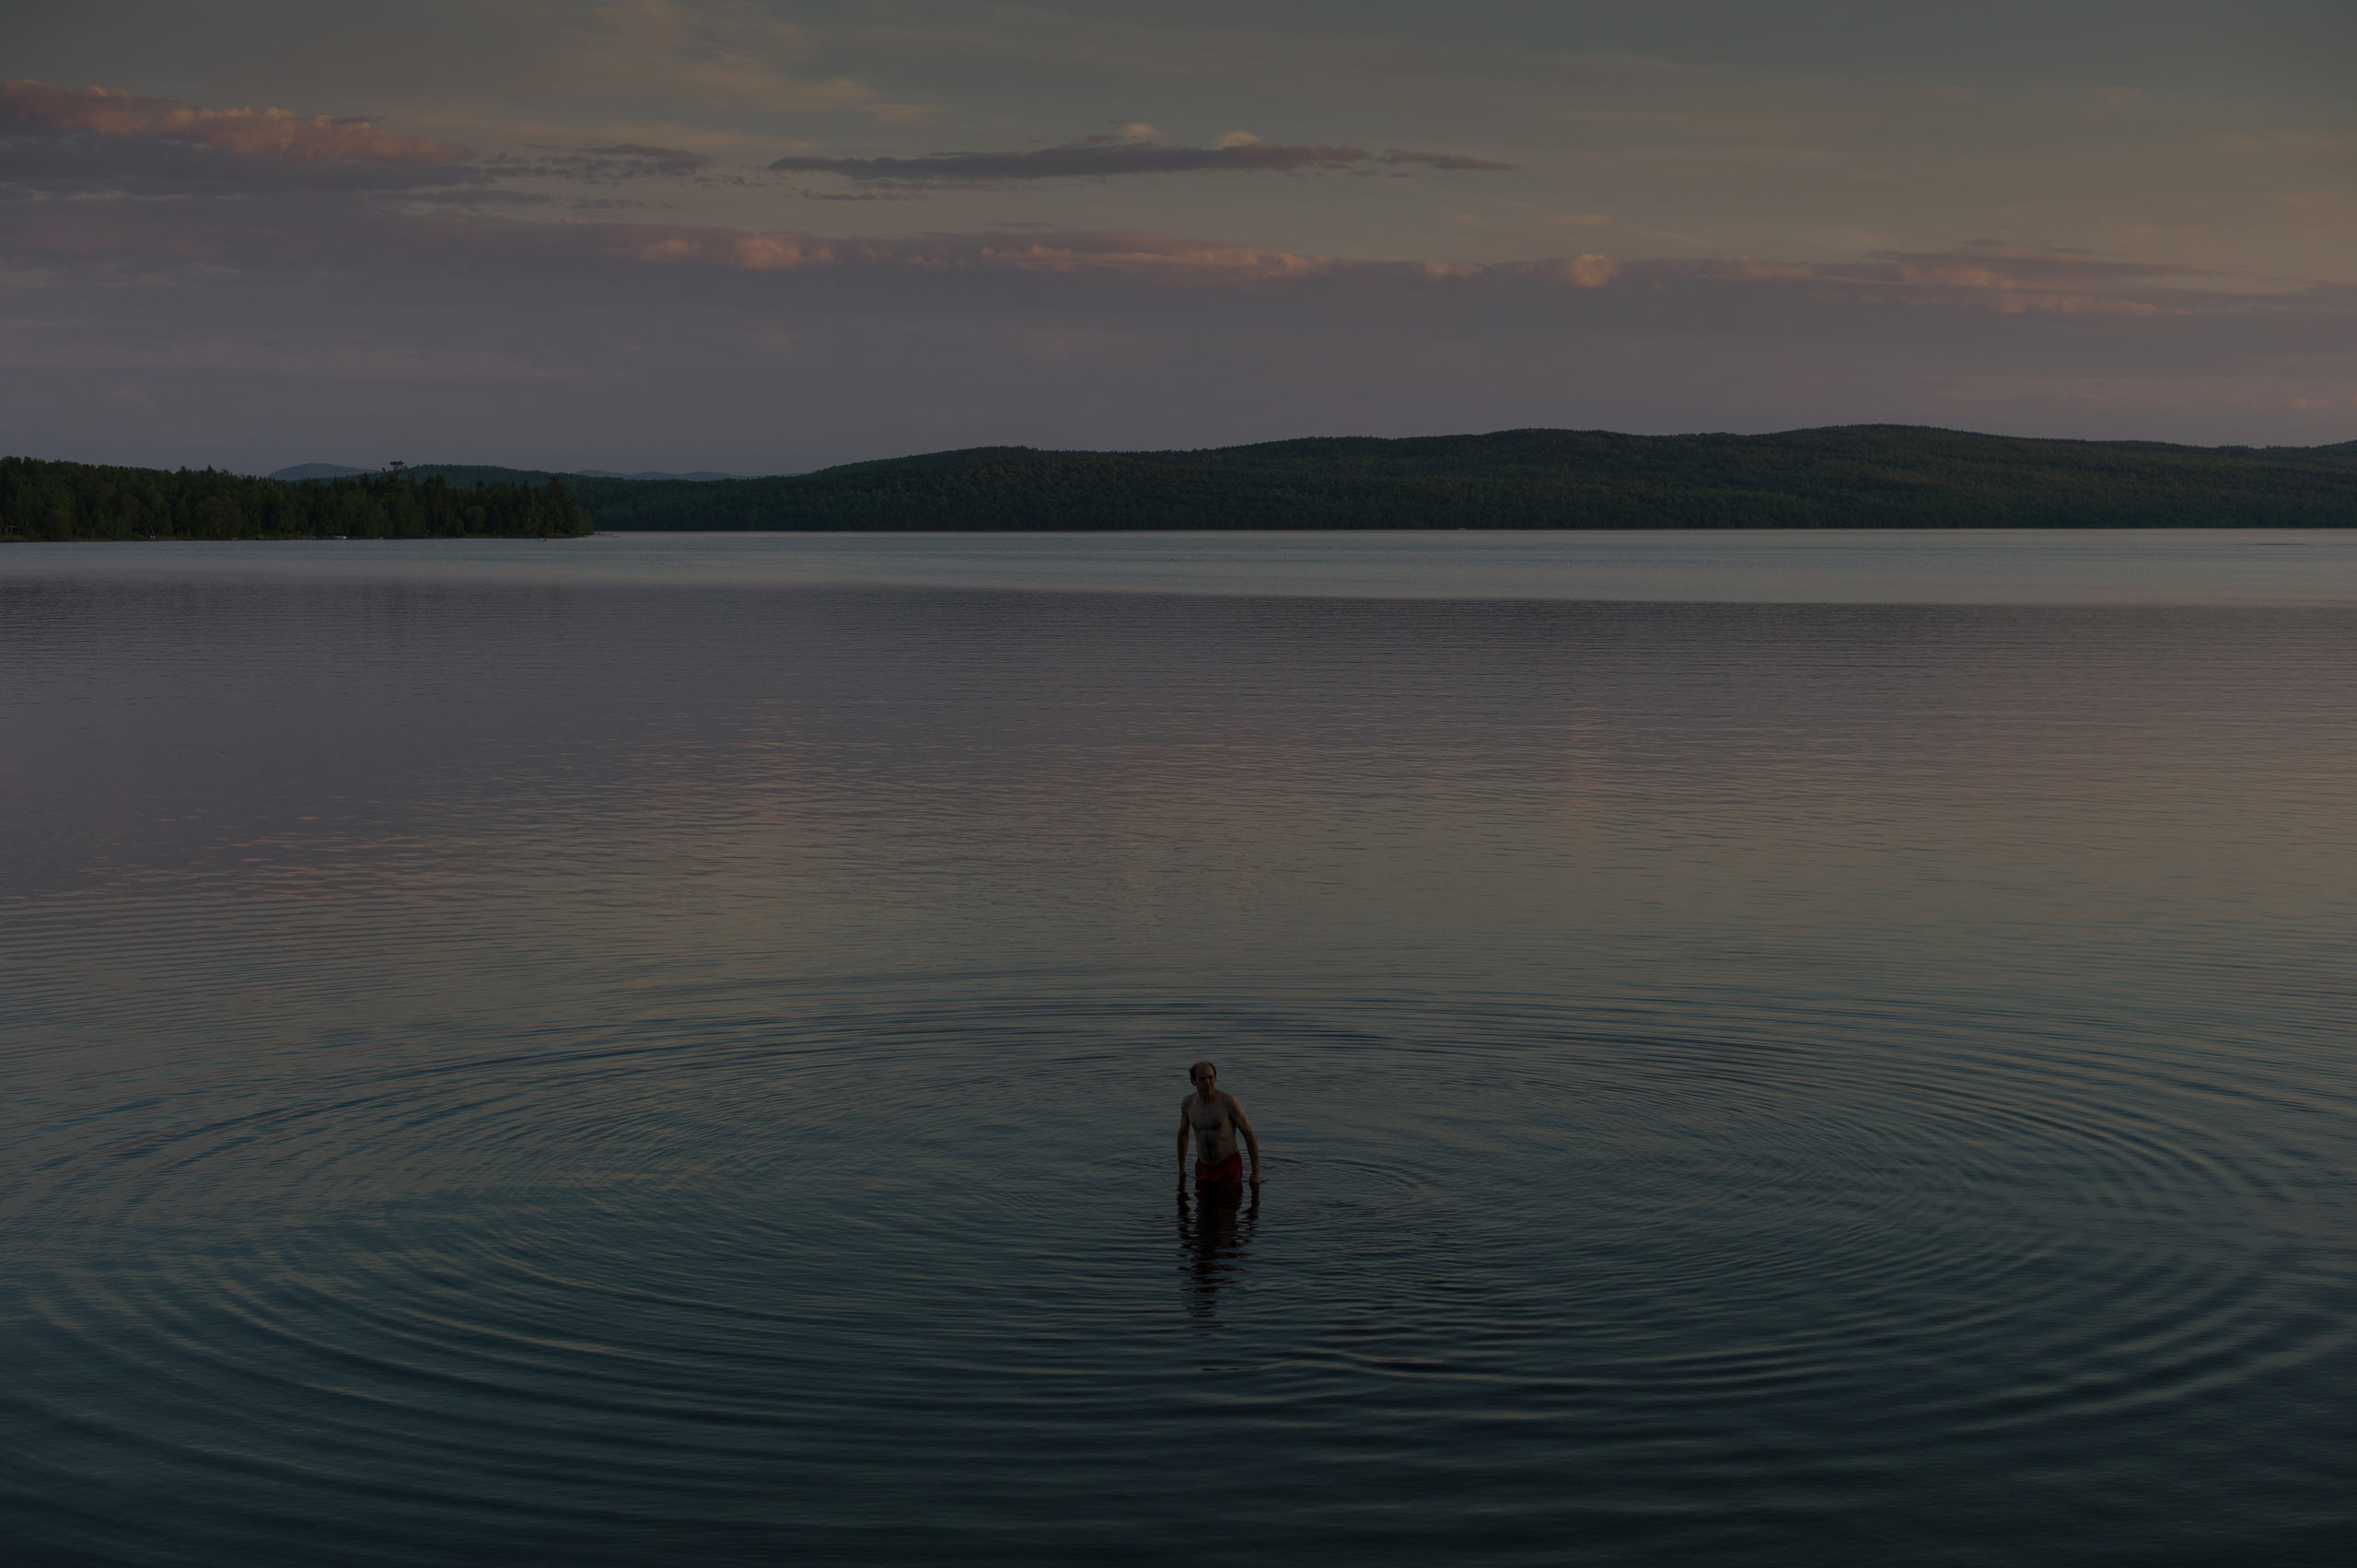 Jacques, first swim of the year in Lac MÈgantic, June 2014.